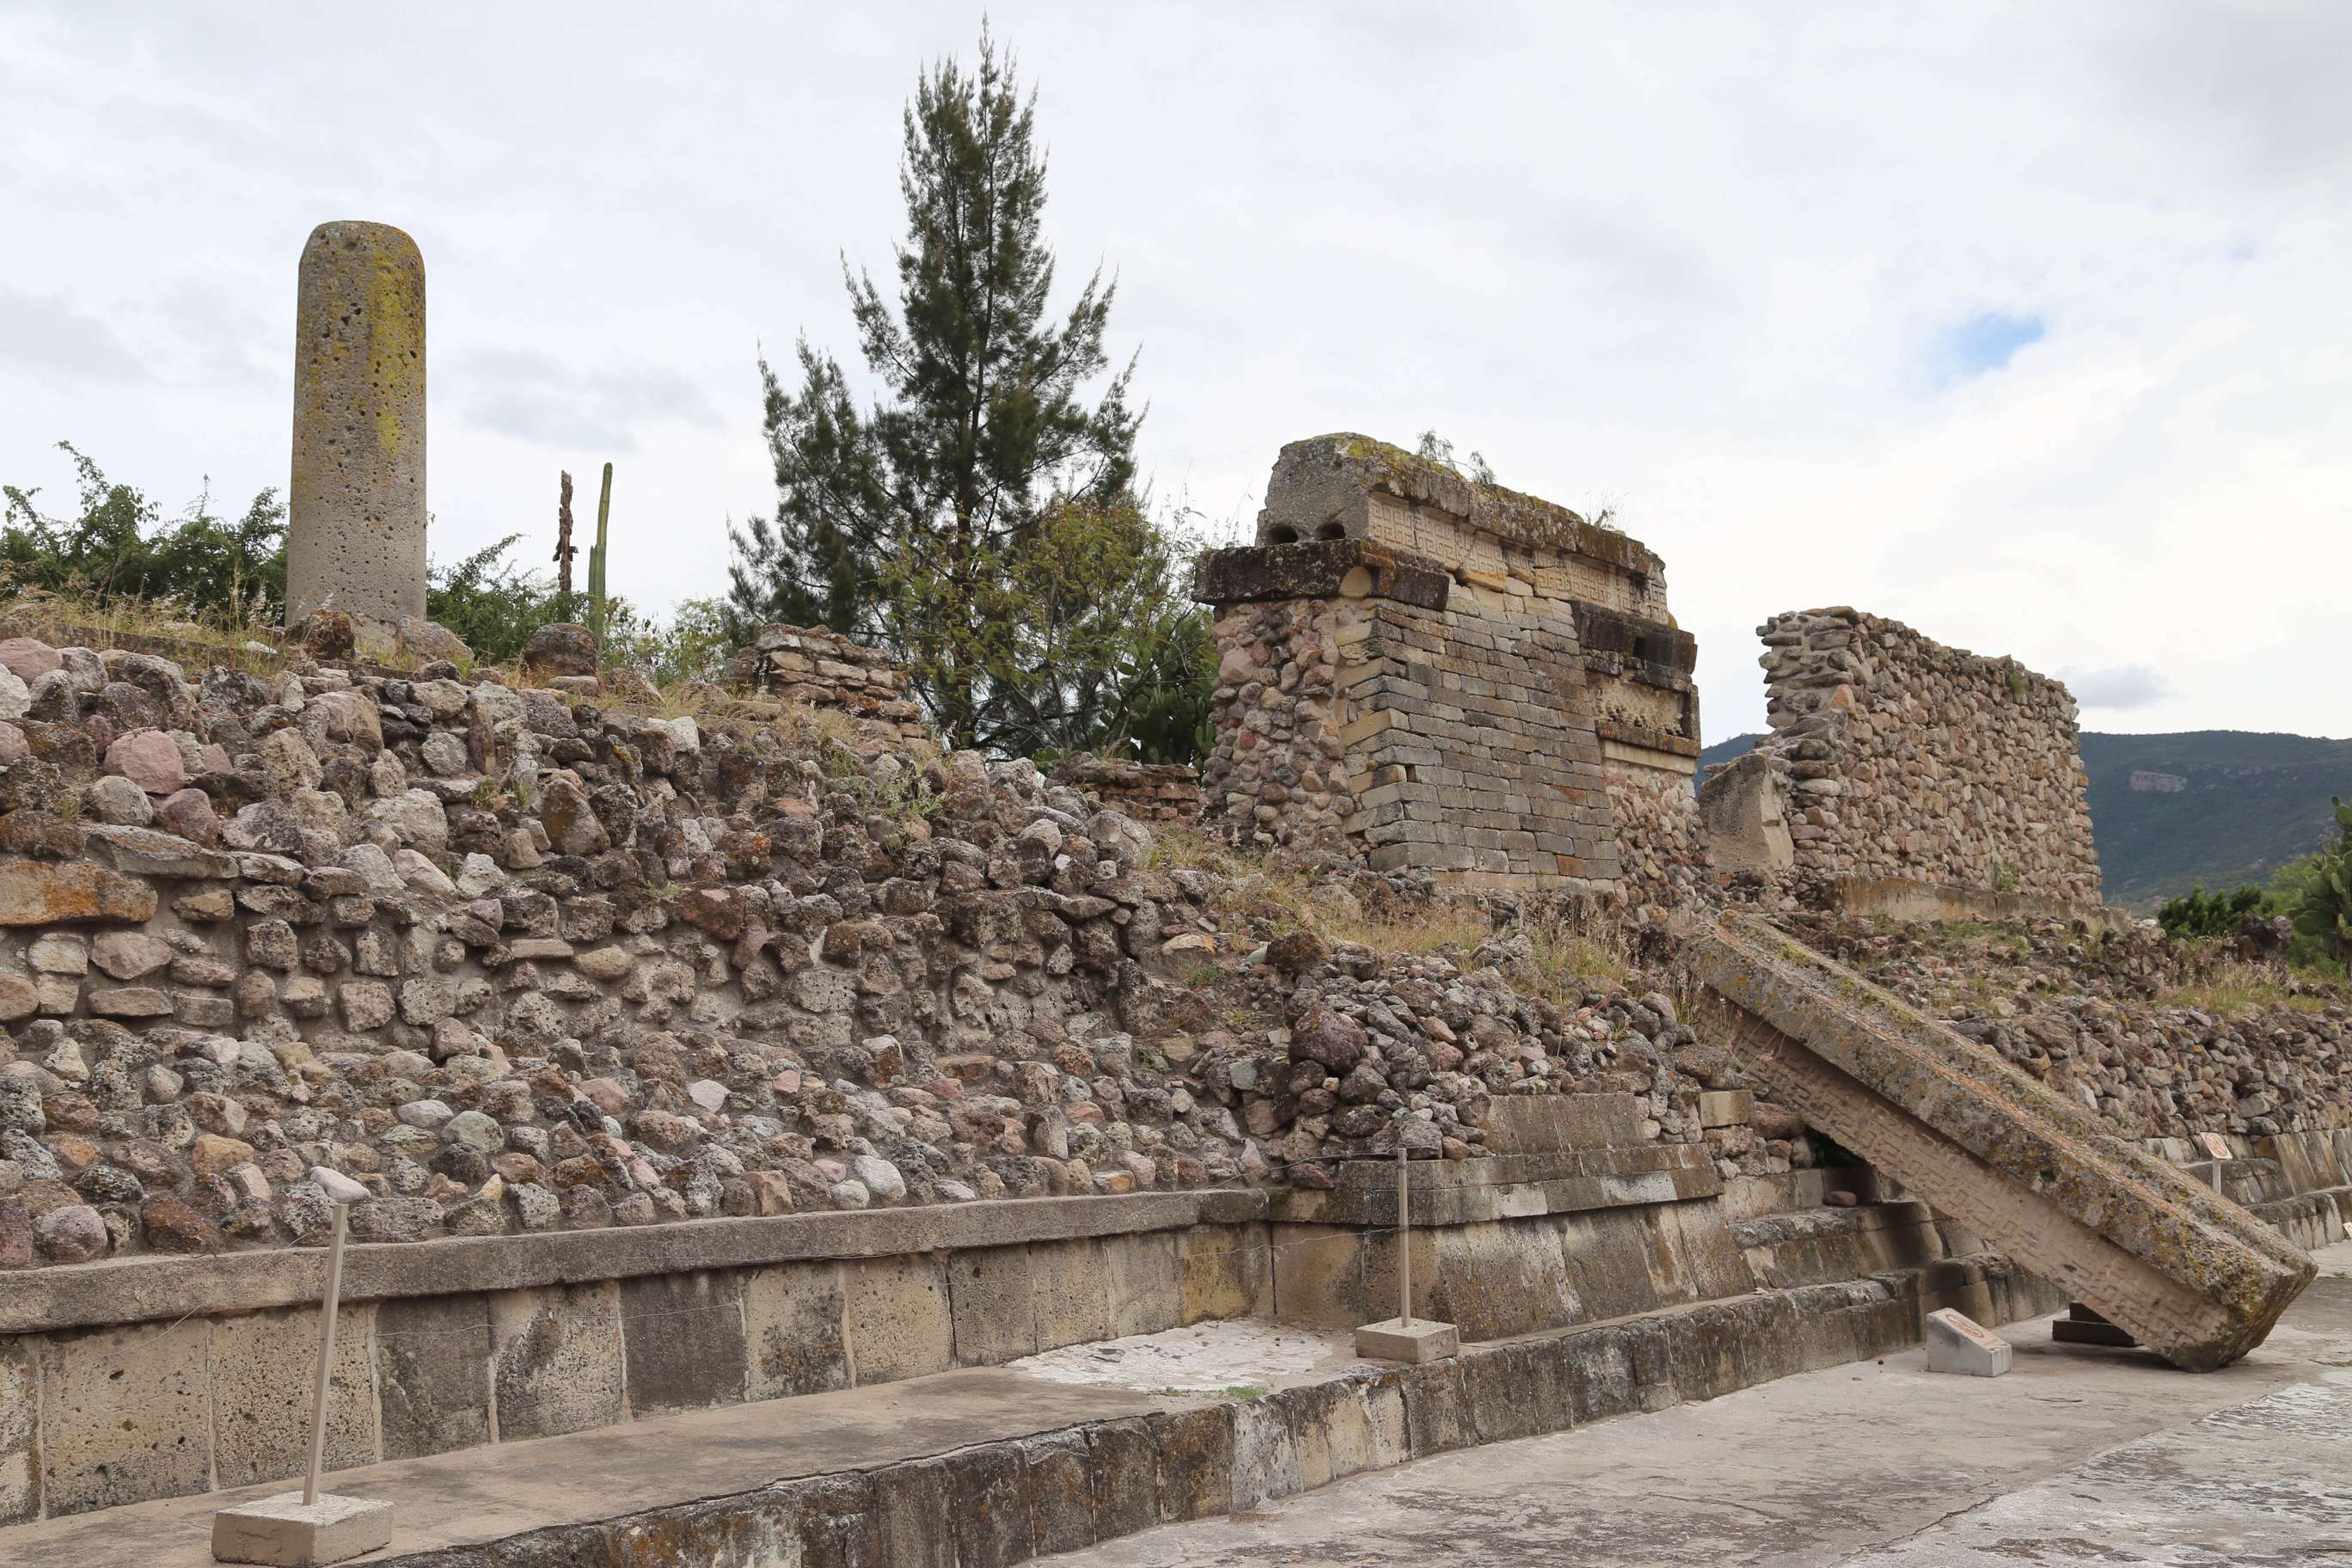 The construction of Mitla consisted of smooth stone walls on either side with fill in between. Many of the stones from Mitla were taken to build the Catholic church by the Spanish.